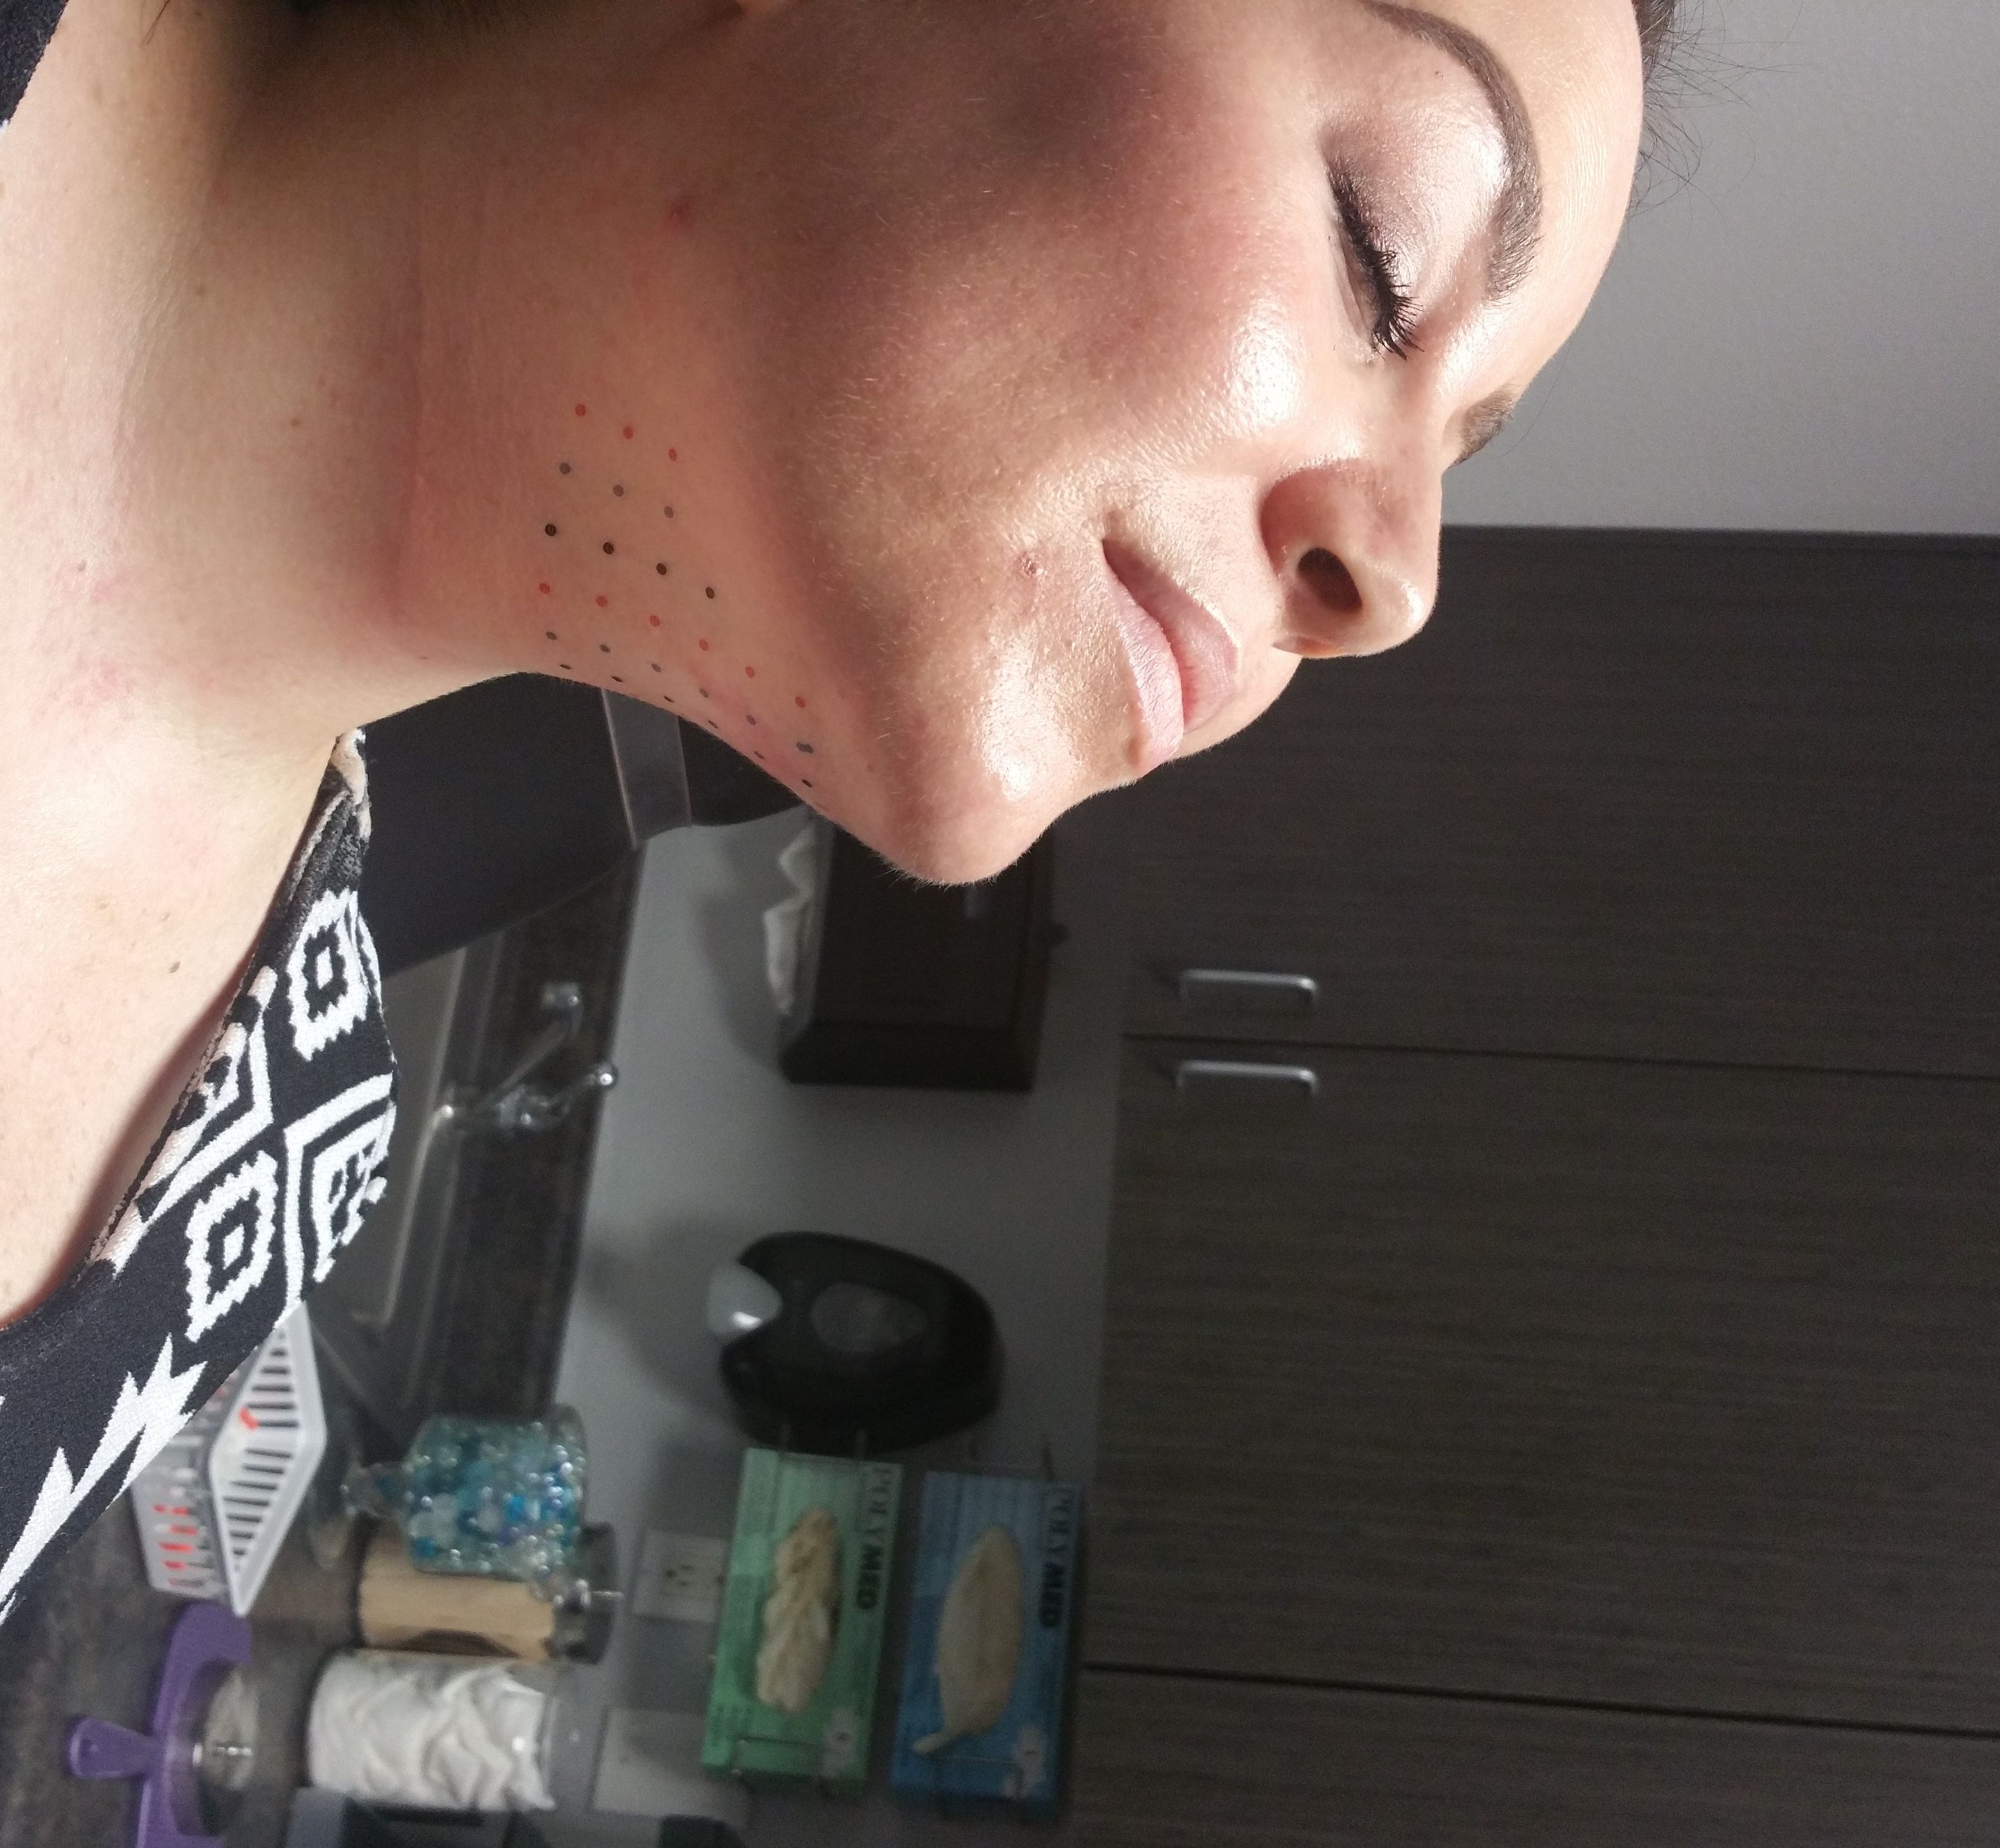 how to get rid of under chin fat fast